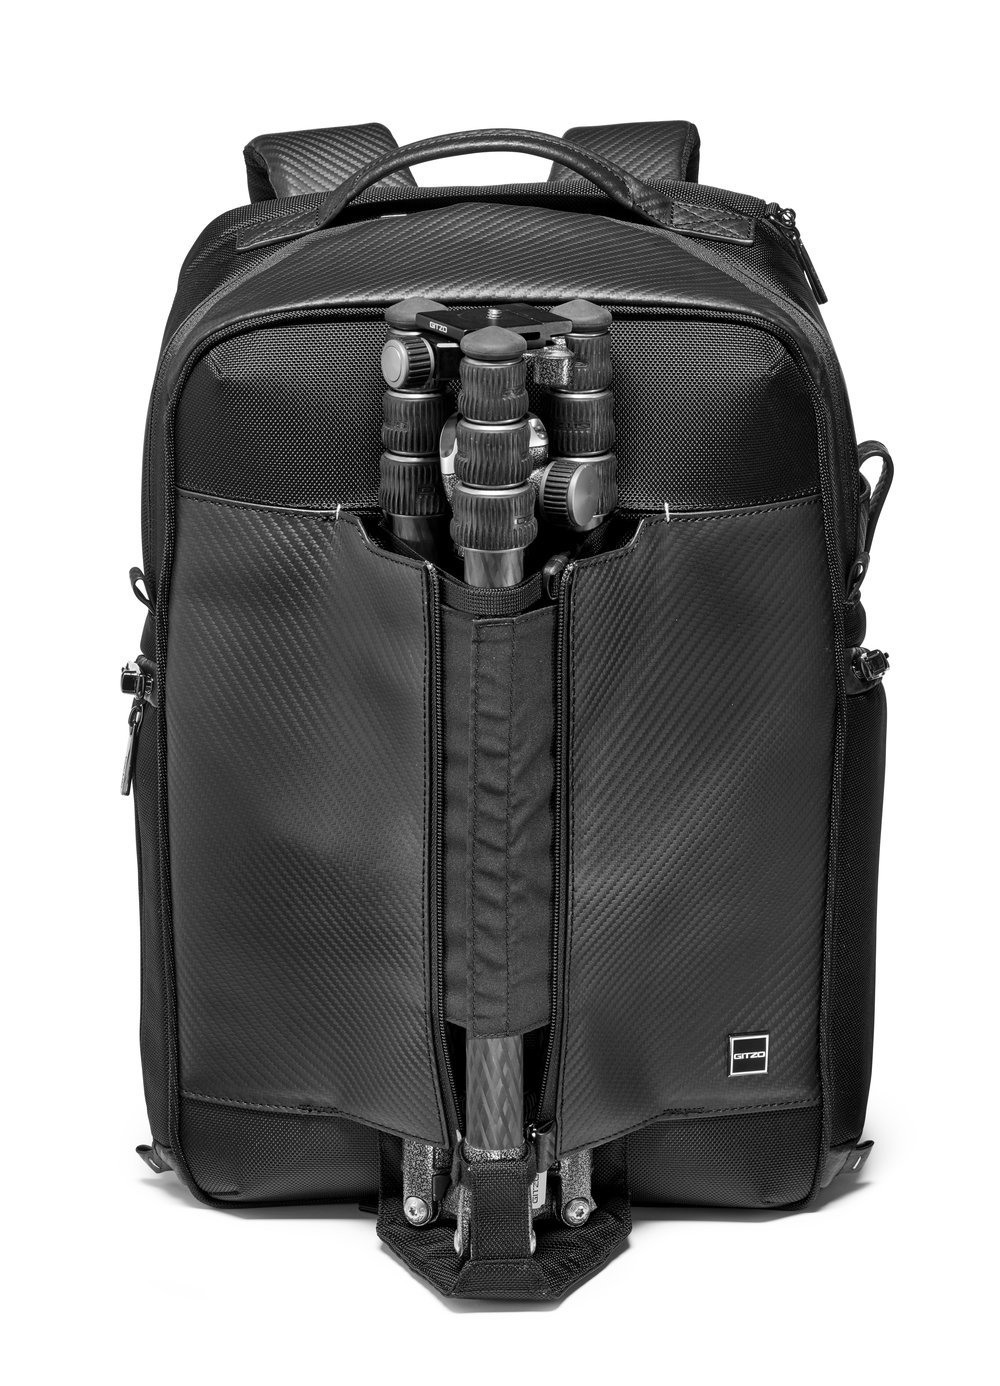 HR-GITZO_camera_bag_GCB100BP_tripod_B_01.jpg